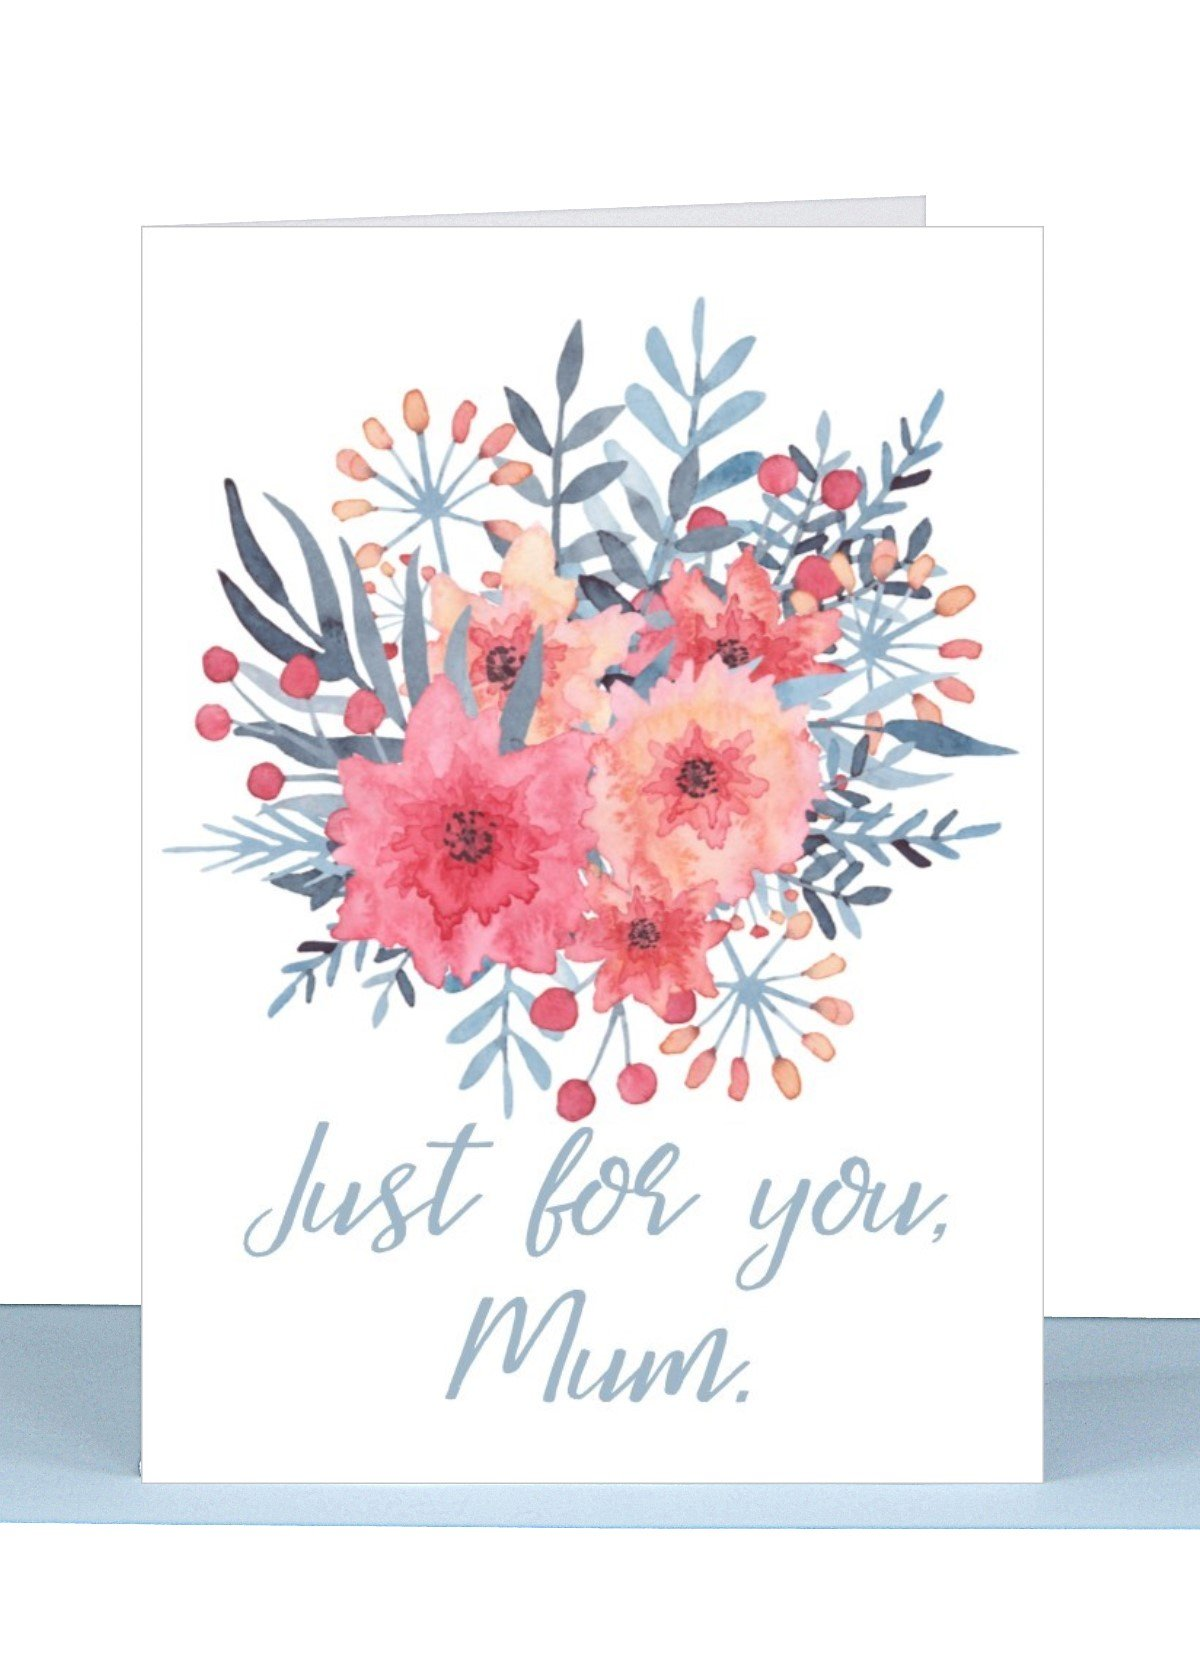 Gift Cards Sydney A Gift Card For Your Mum Lil 39s Wholesale Cards Sydney